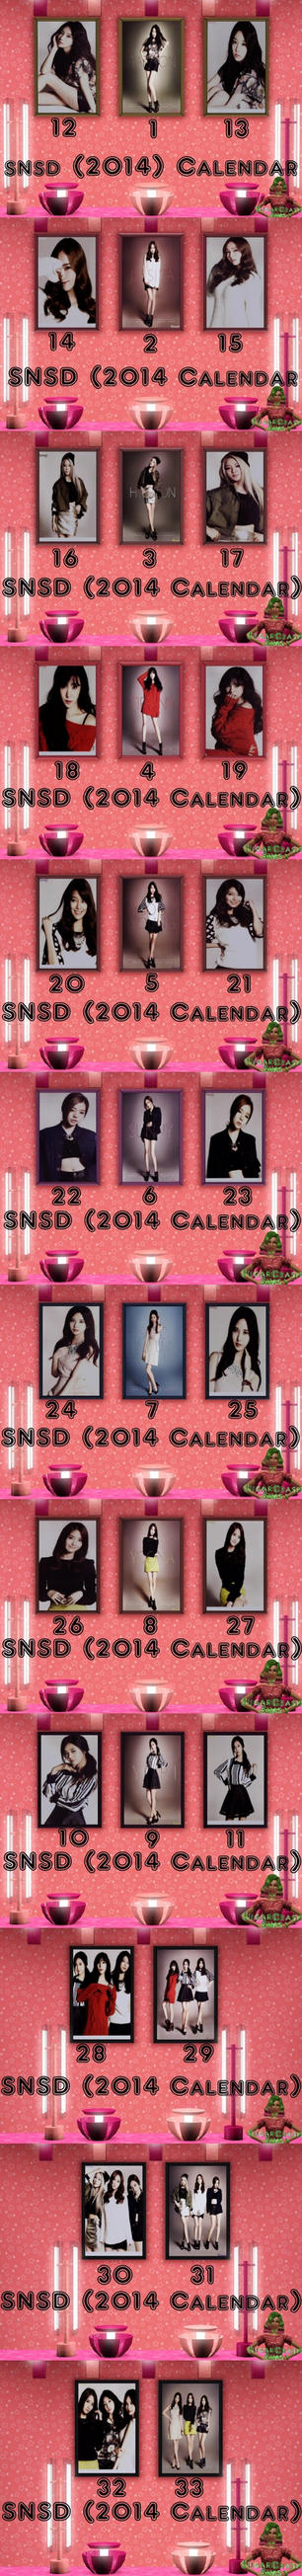 SNSD (2014 Calendar) Pictures-Sims3 by babygreenlizard